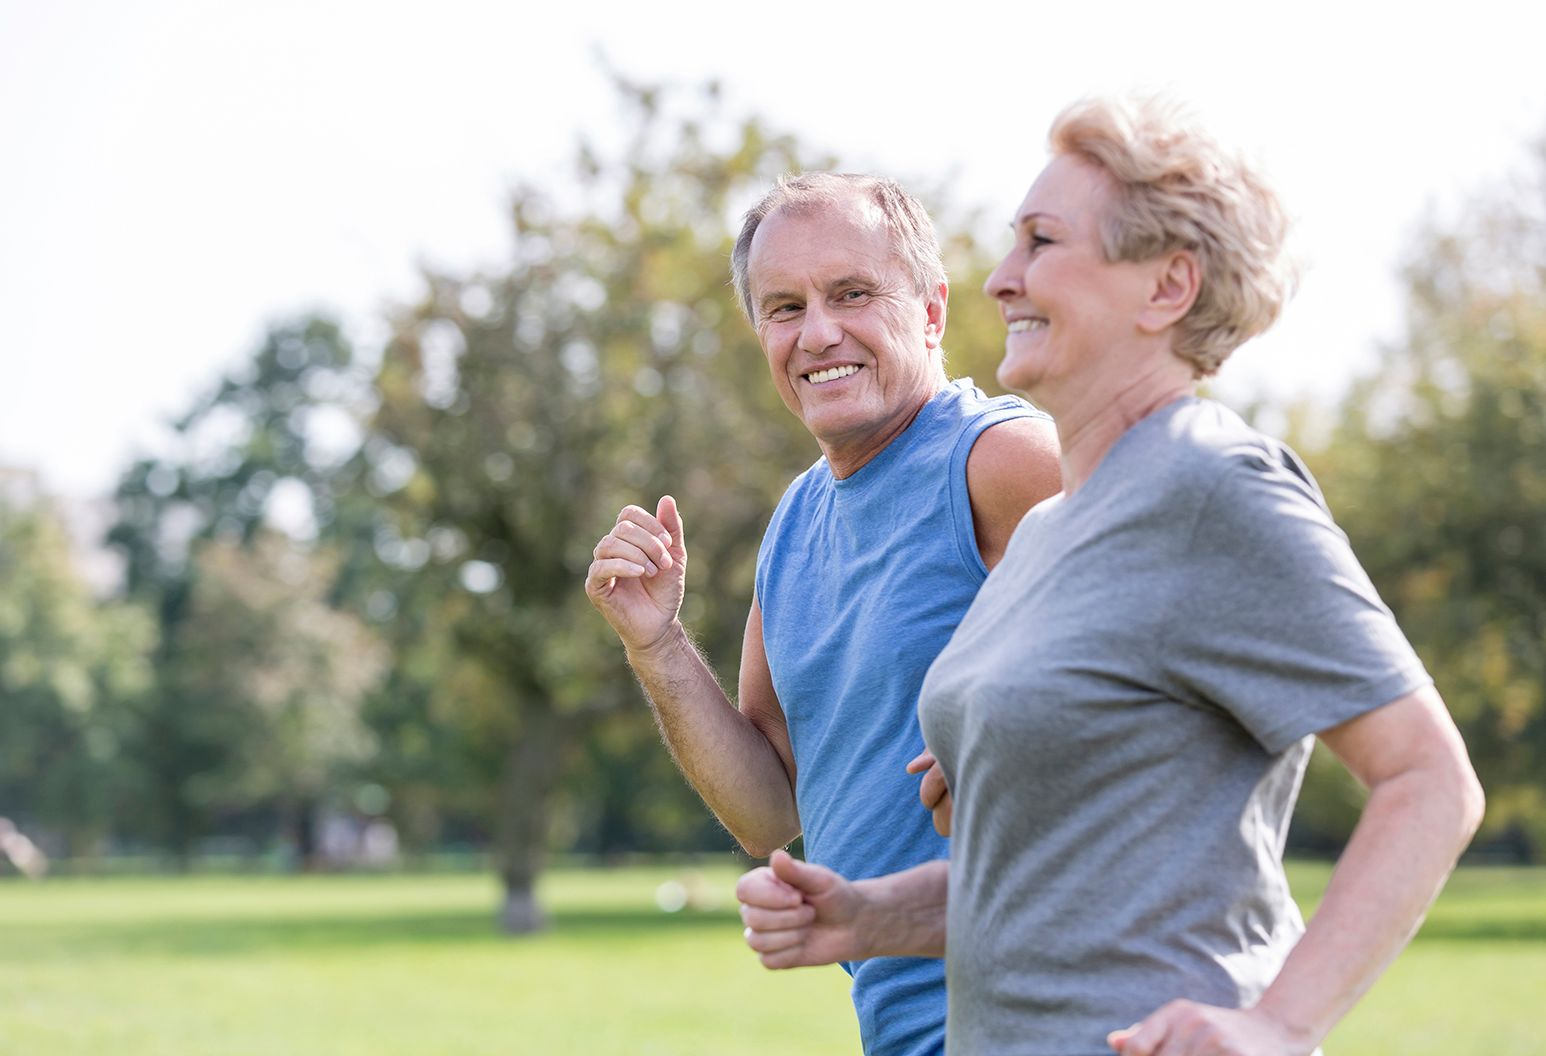 Senior couple jogging together in the park